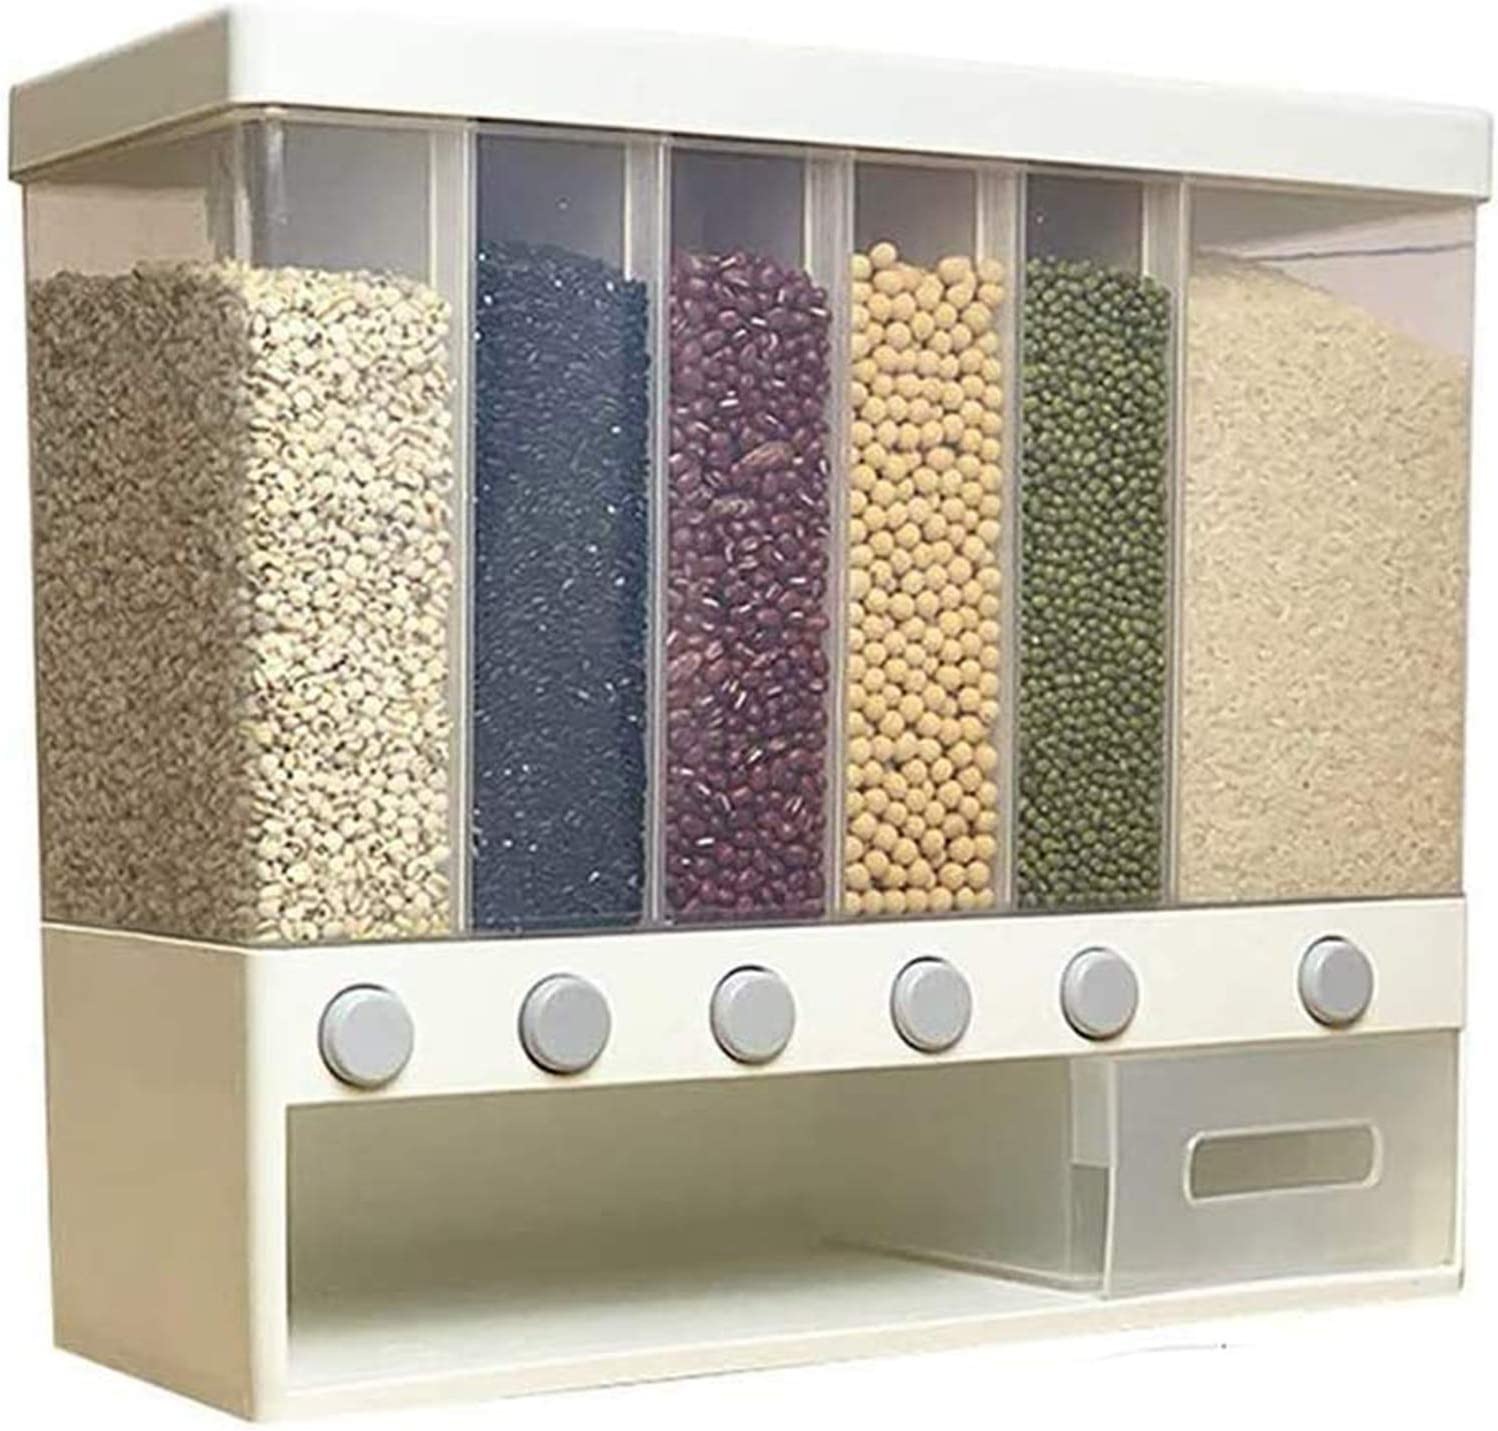 Dry Food Dispenser Wall Mounted Cereal Dispenser Rice Storage Box Large Cereal Containers Space Saving Grain Storage Containers for Cereal, Rice, Nuts, Candy, Coffee Bean, Snack, Grain